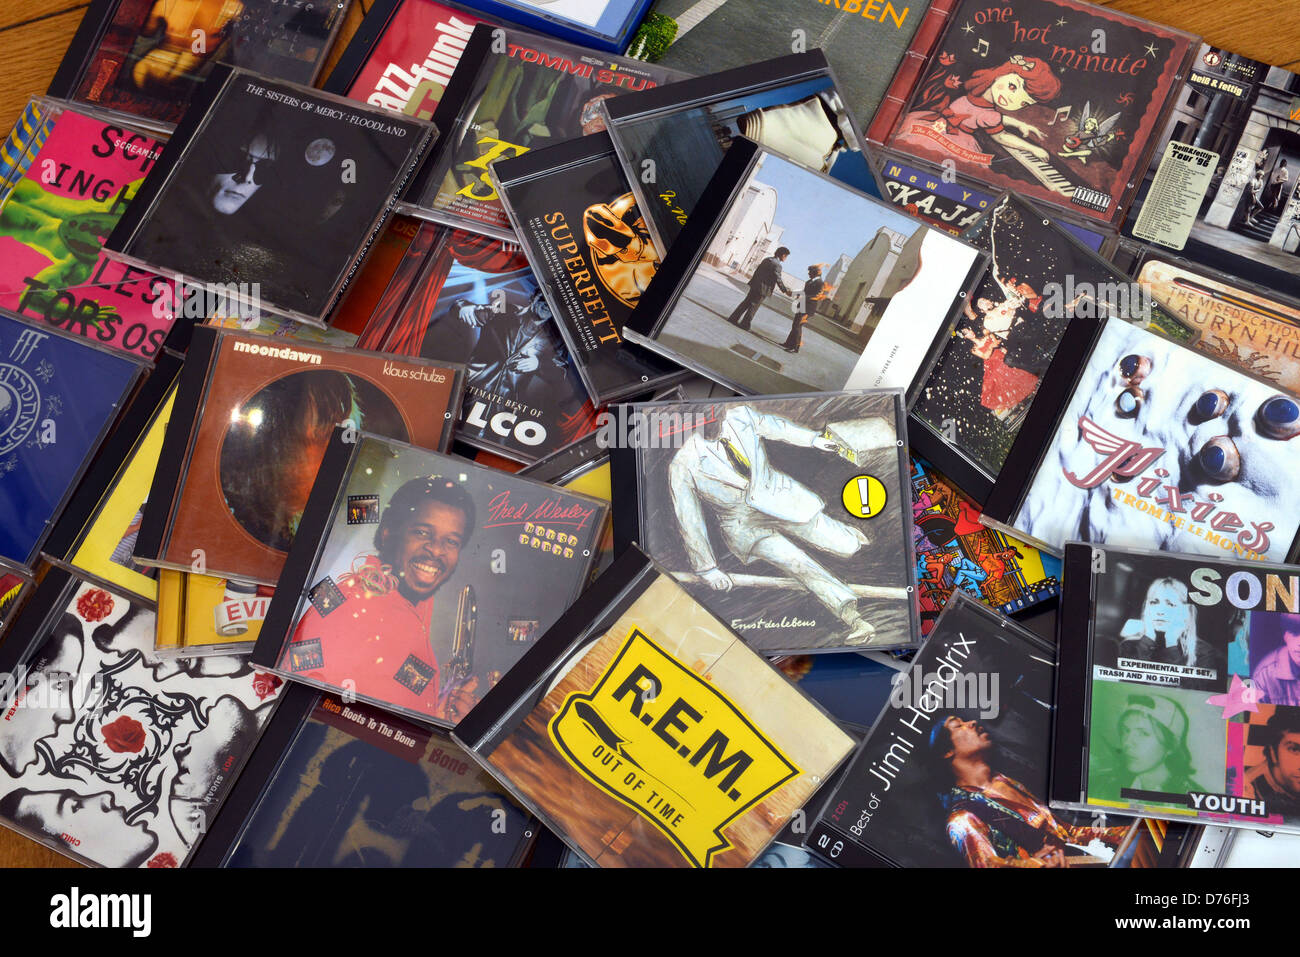 Music CDs Stock Photo: 56077675 - Alamy